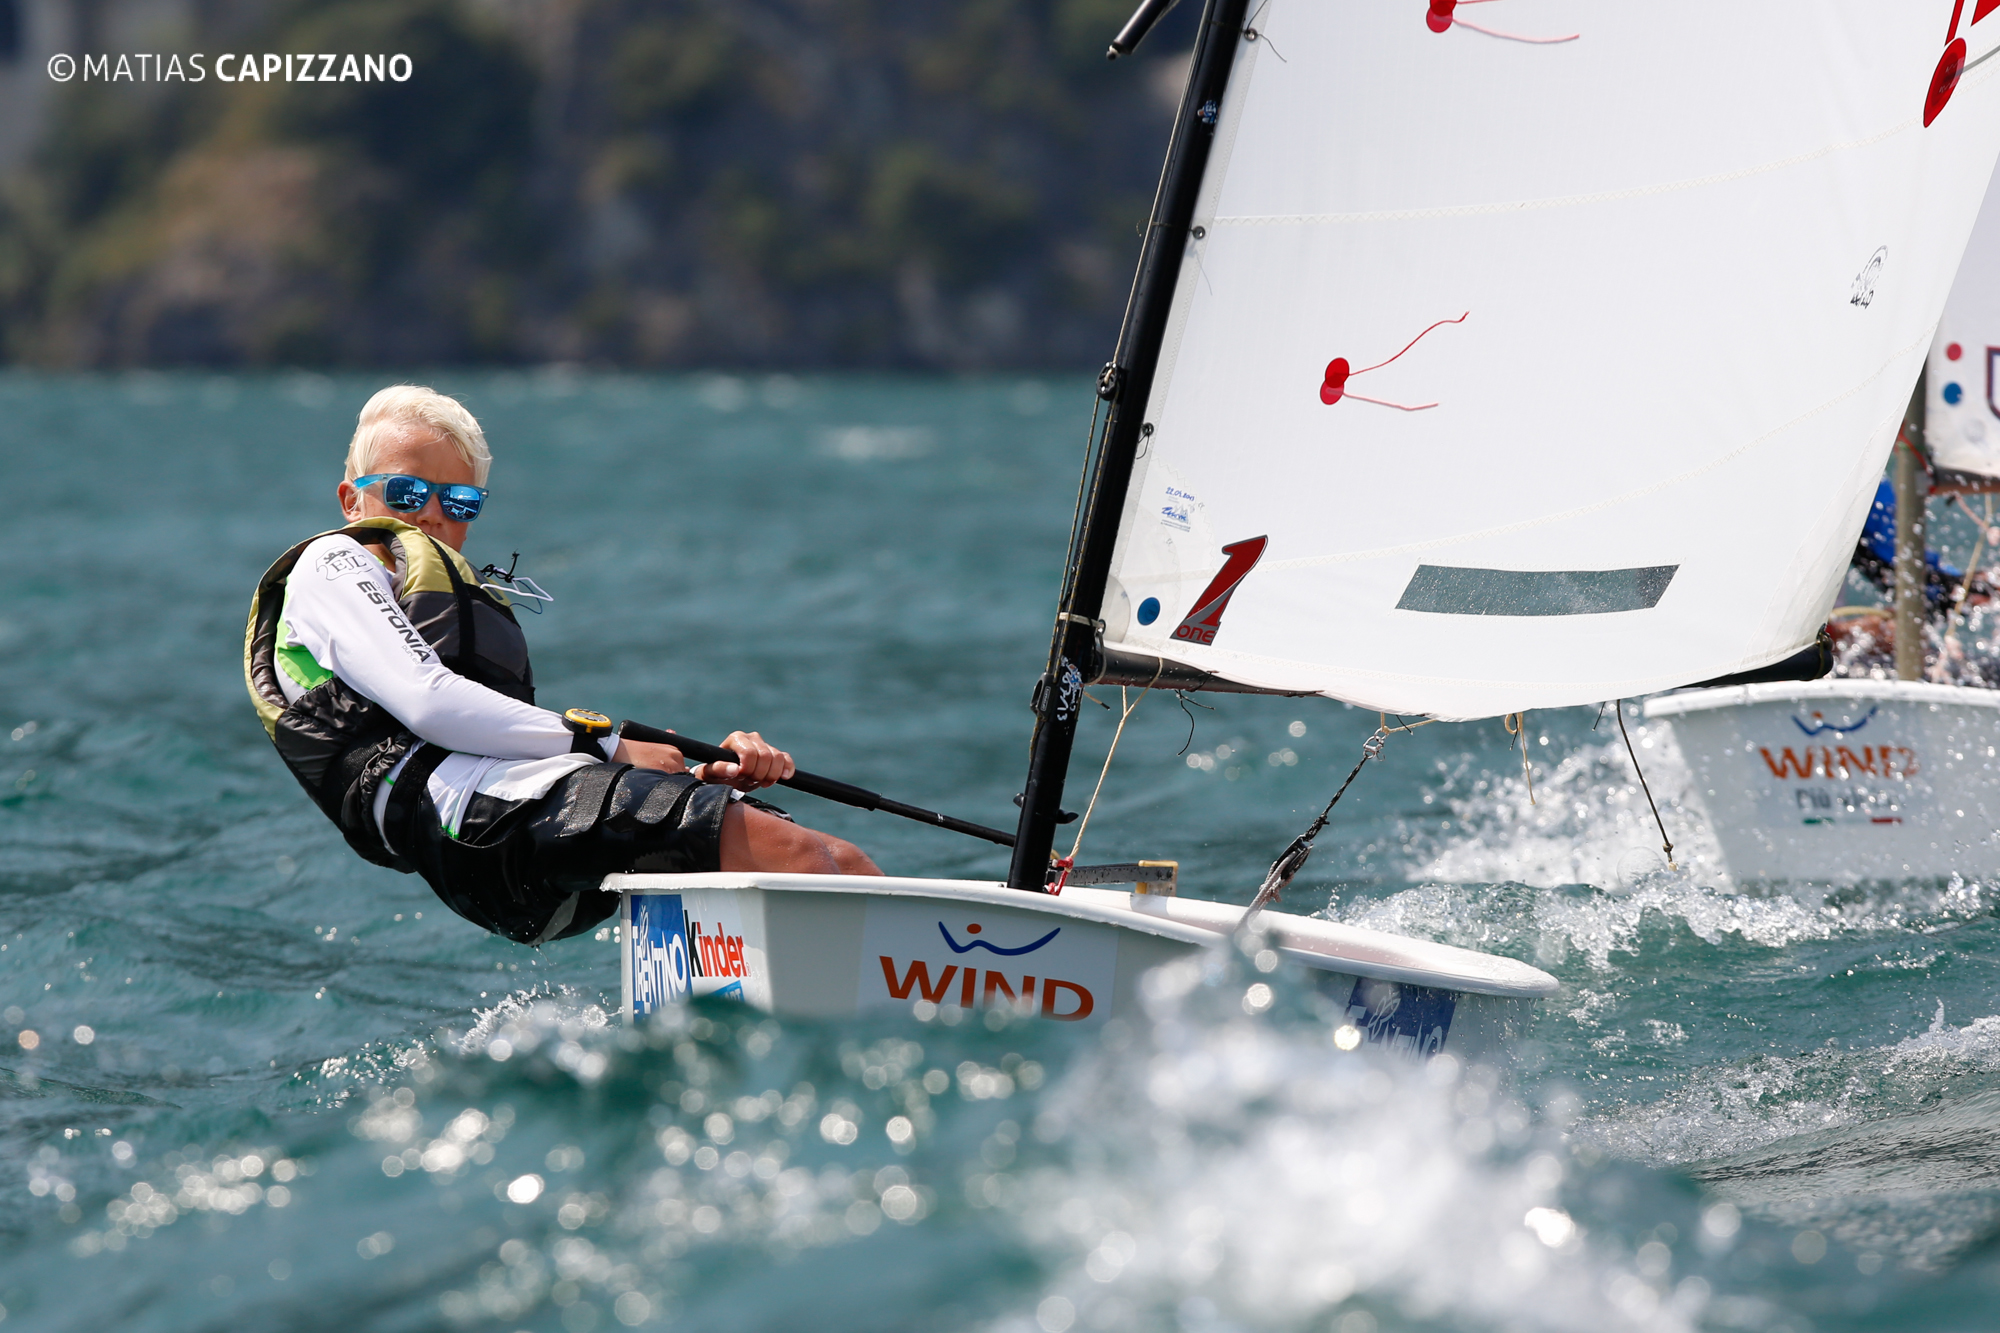 Races Day 1, Optimist World Championship 2013., Italy, © Matias Capizzano